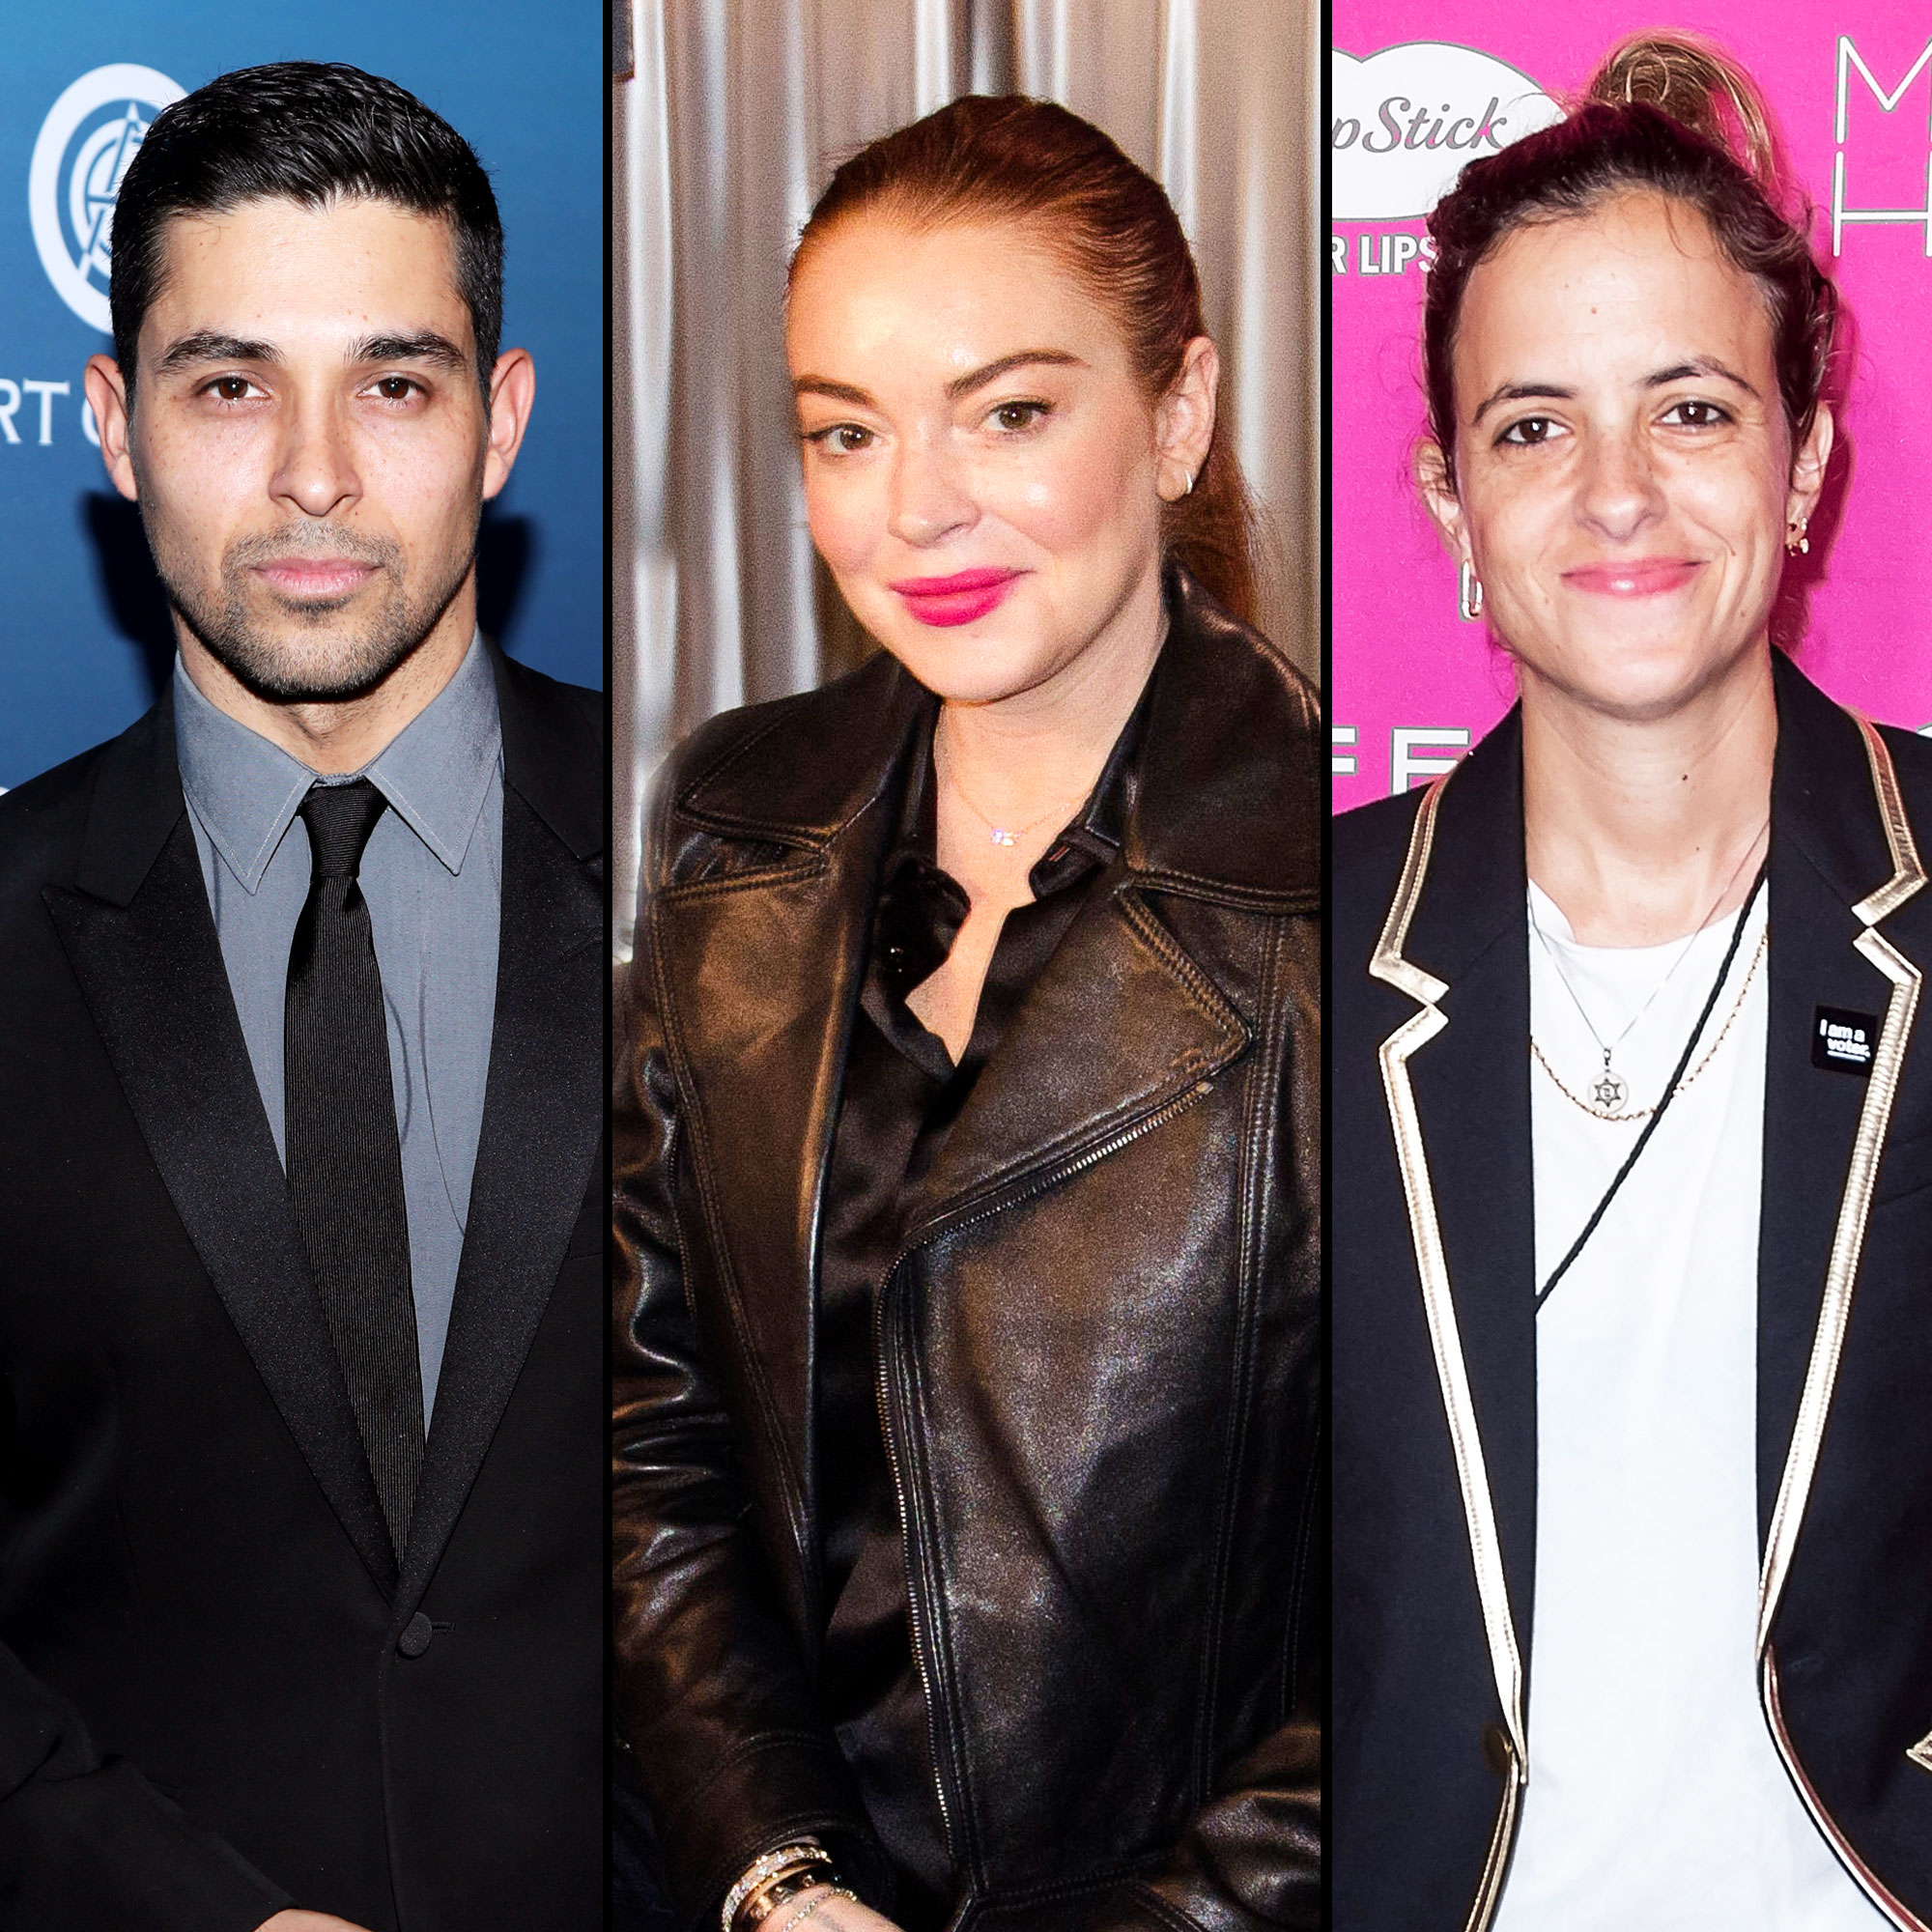 Lindsay Lohan Opens Up About Exes Wilmer Valderrama, Samantha Ronson - Wilmer Valderrama, Lindsay Lohan and Samantha Ronson